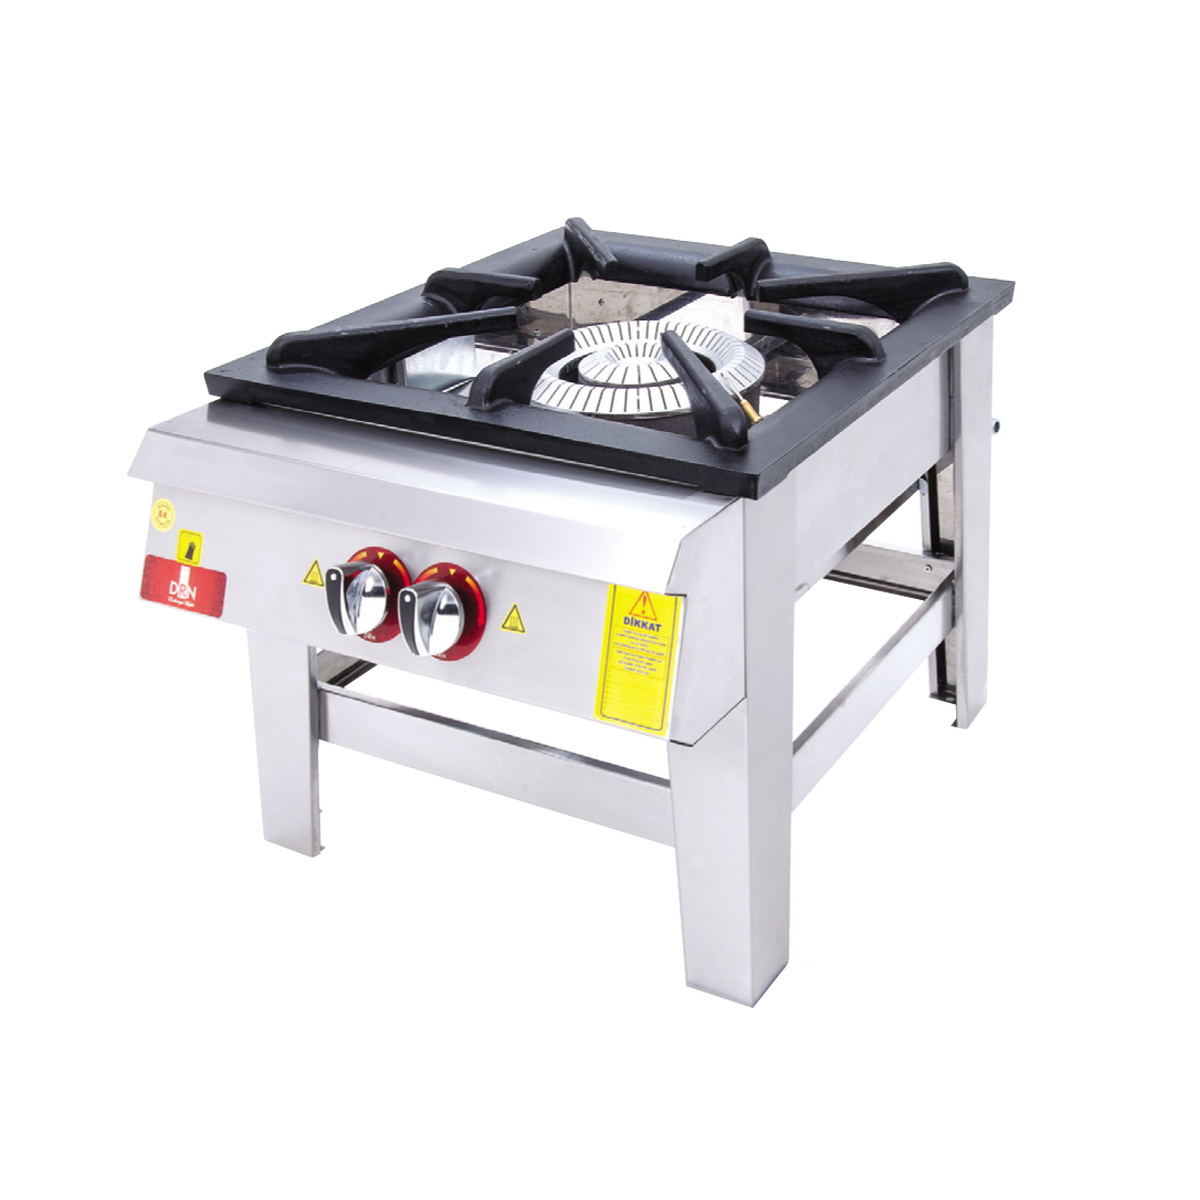 Floor Cooker - Double Ignition - 60x60 - Gas